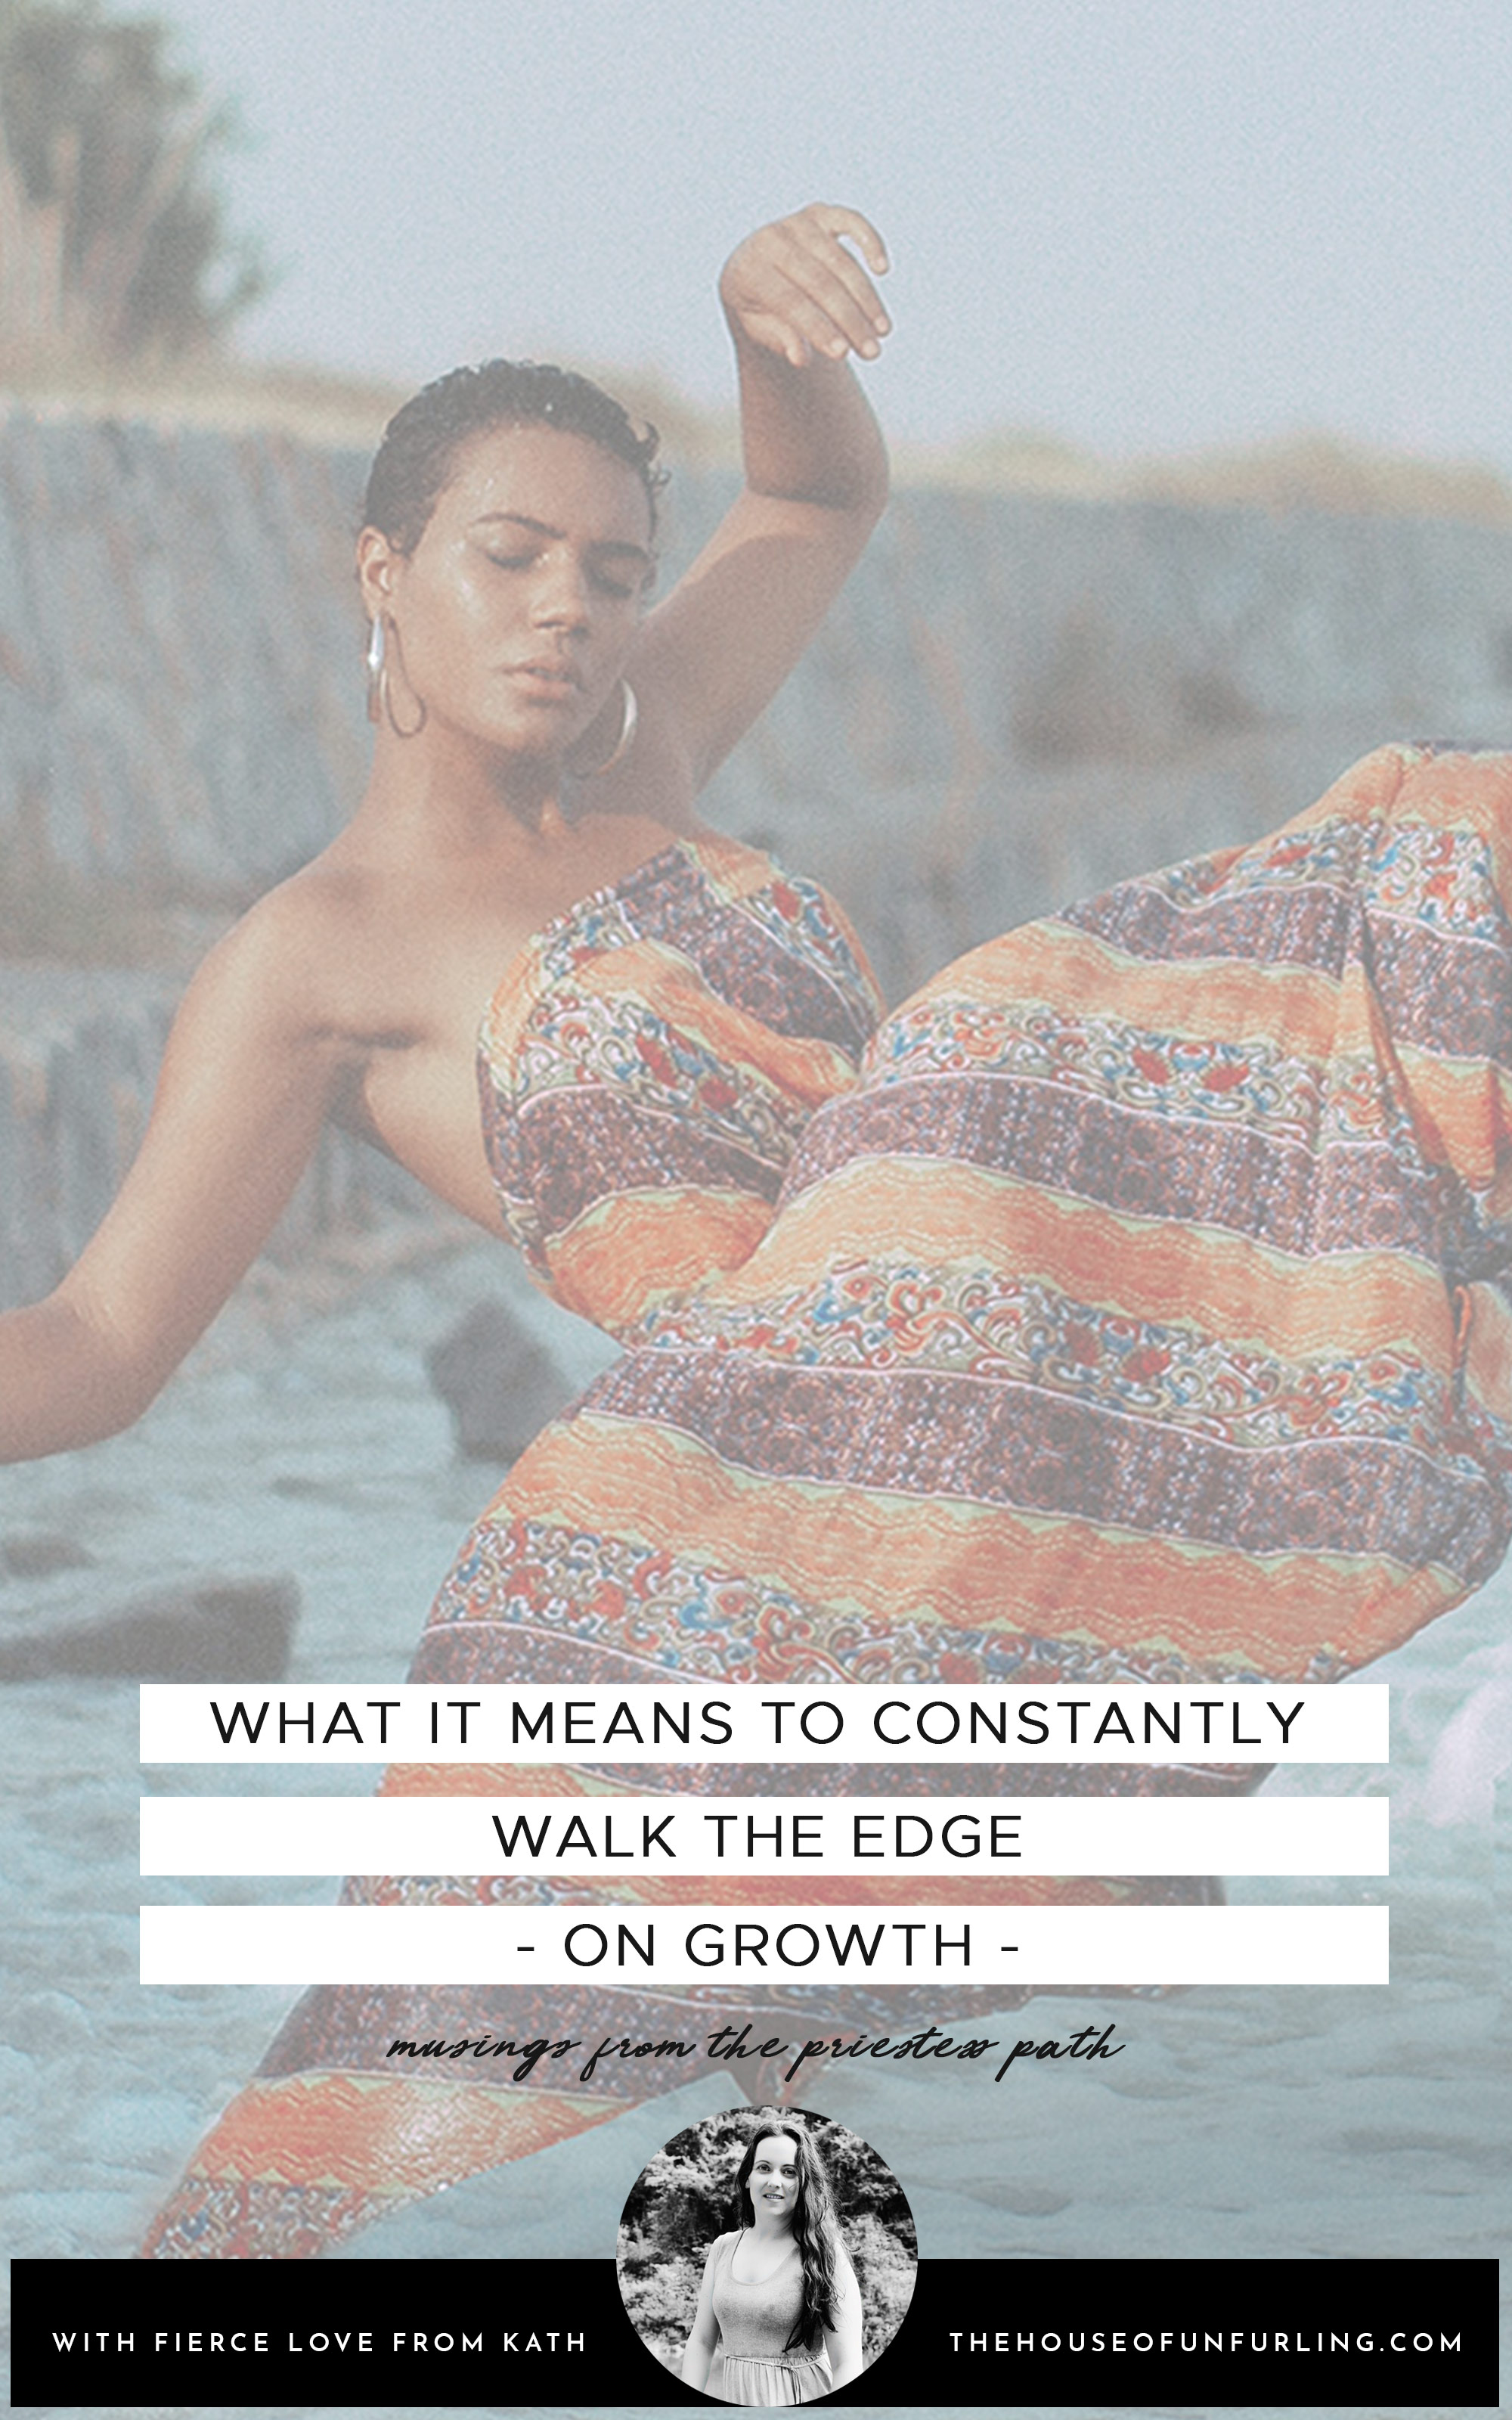 PIN IT - what it means to constantly walk the edge. with fierce love, Kath